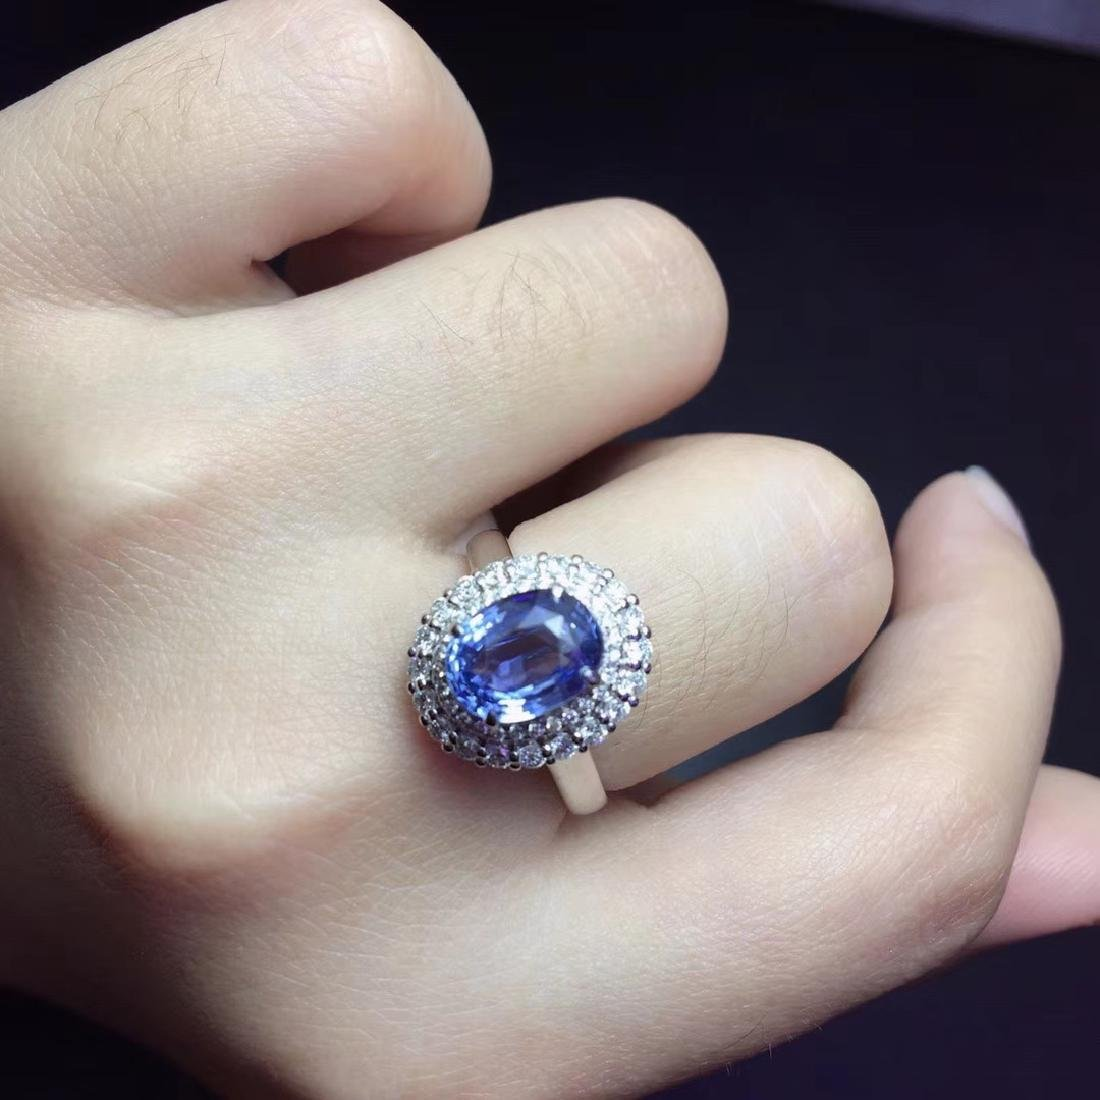 2.59ct Sapphire Ring in 18kt White Gold - 6